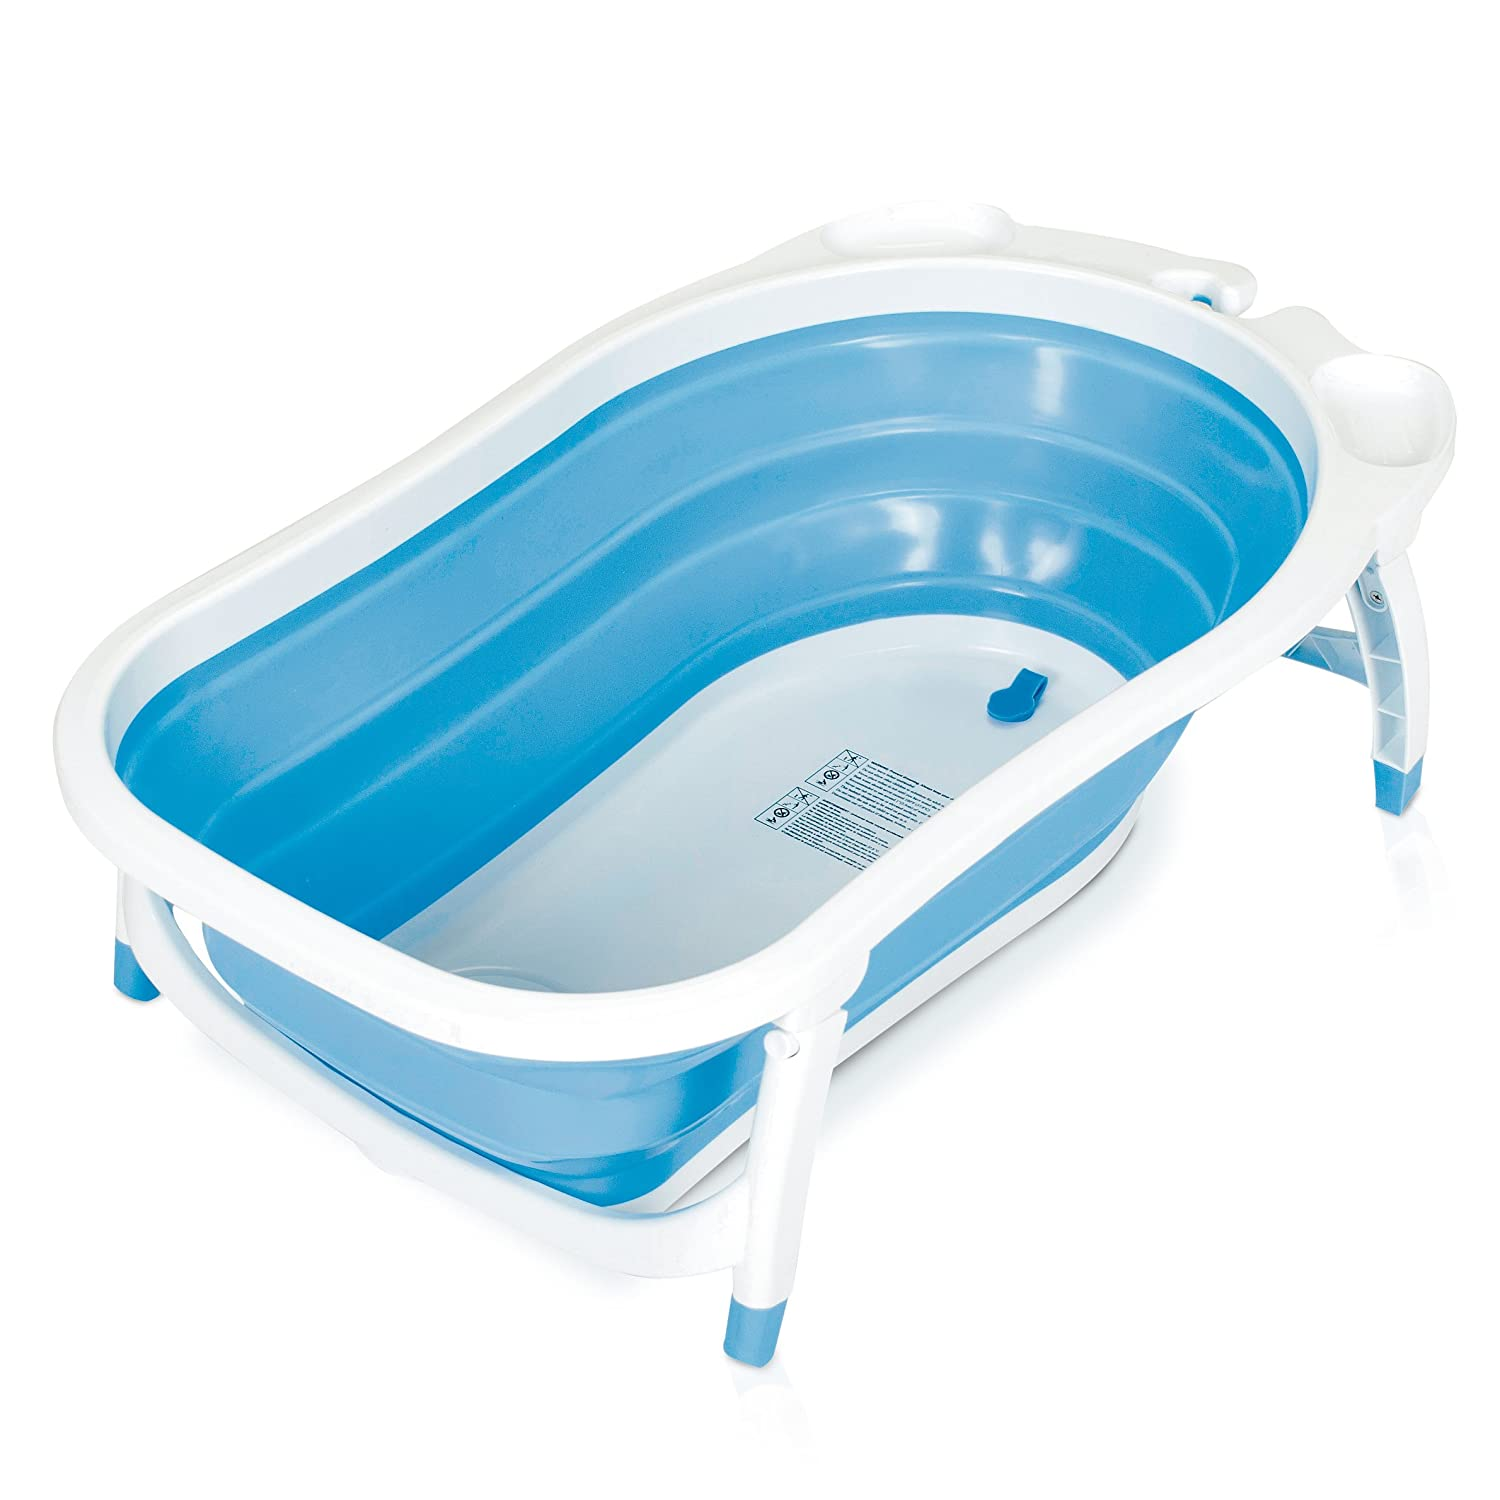 Amazon.com : Baby Trend Karibu Folding Bath Tub, Blue/White : Baby